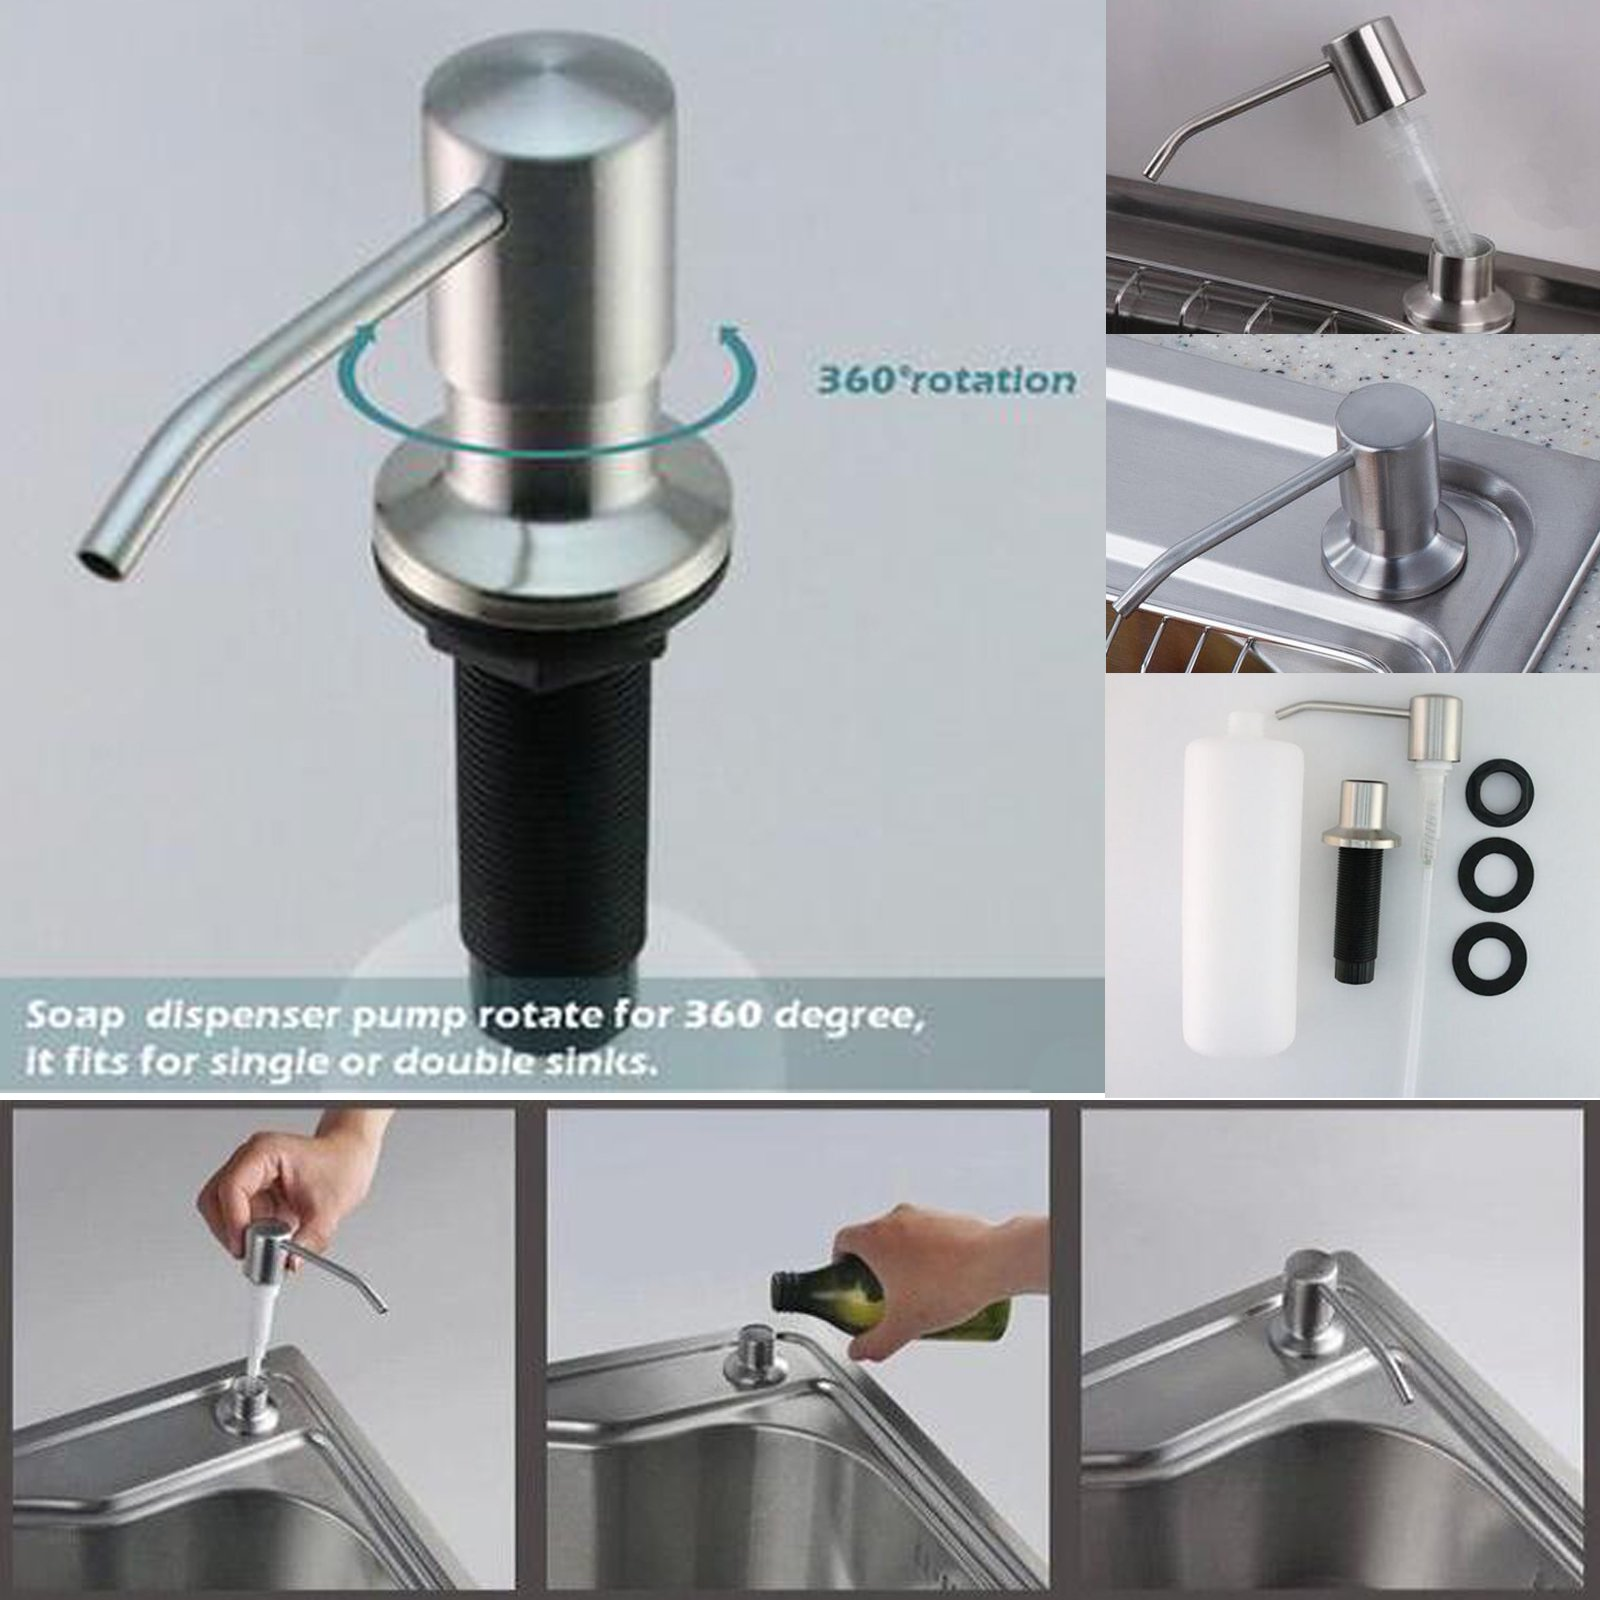 Stainless Steel Built In Pump Kitchen Sink Dish Soap Dispenser Large Capacity 17 Oz Bottle 3 15 Inch Threaded Tube For Thick Deck Installation